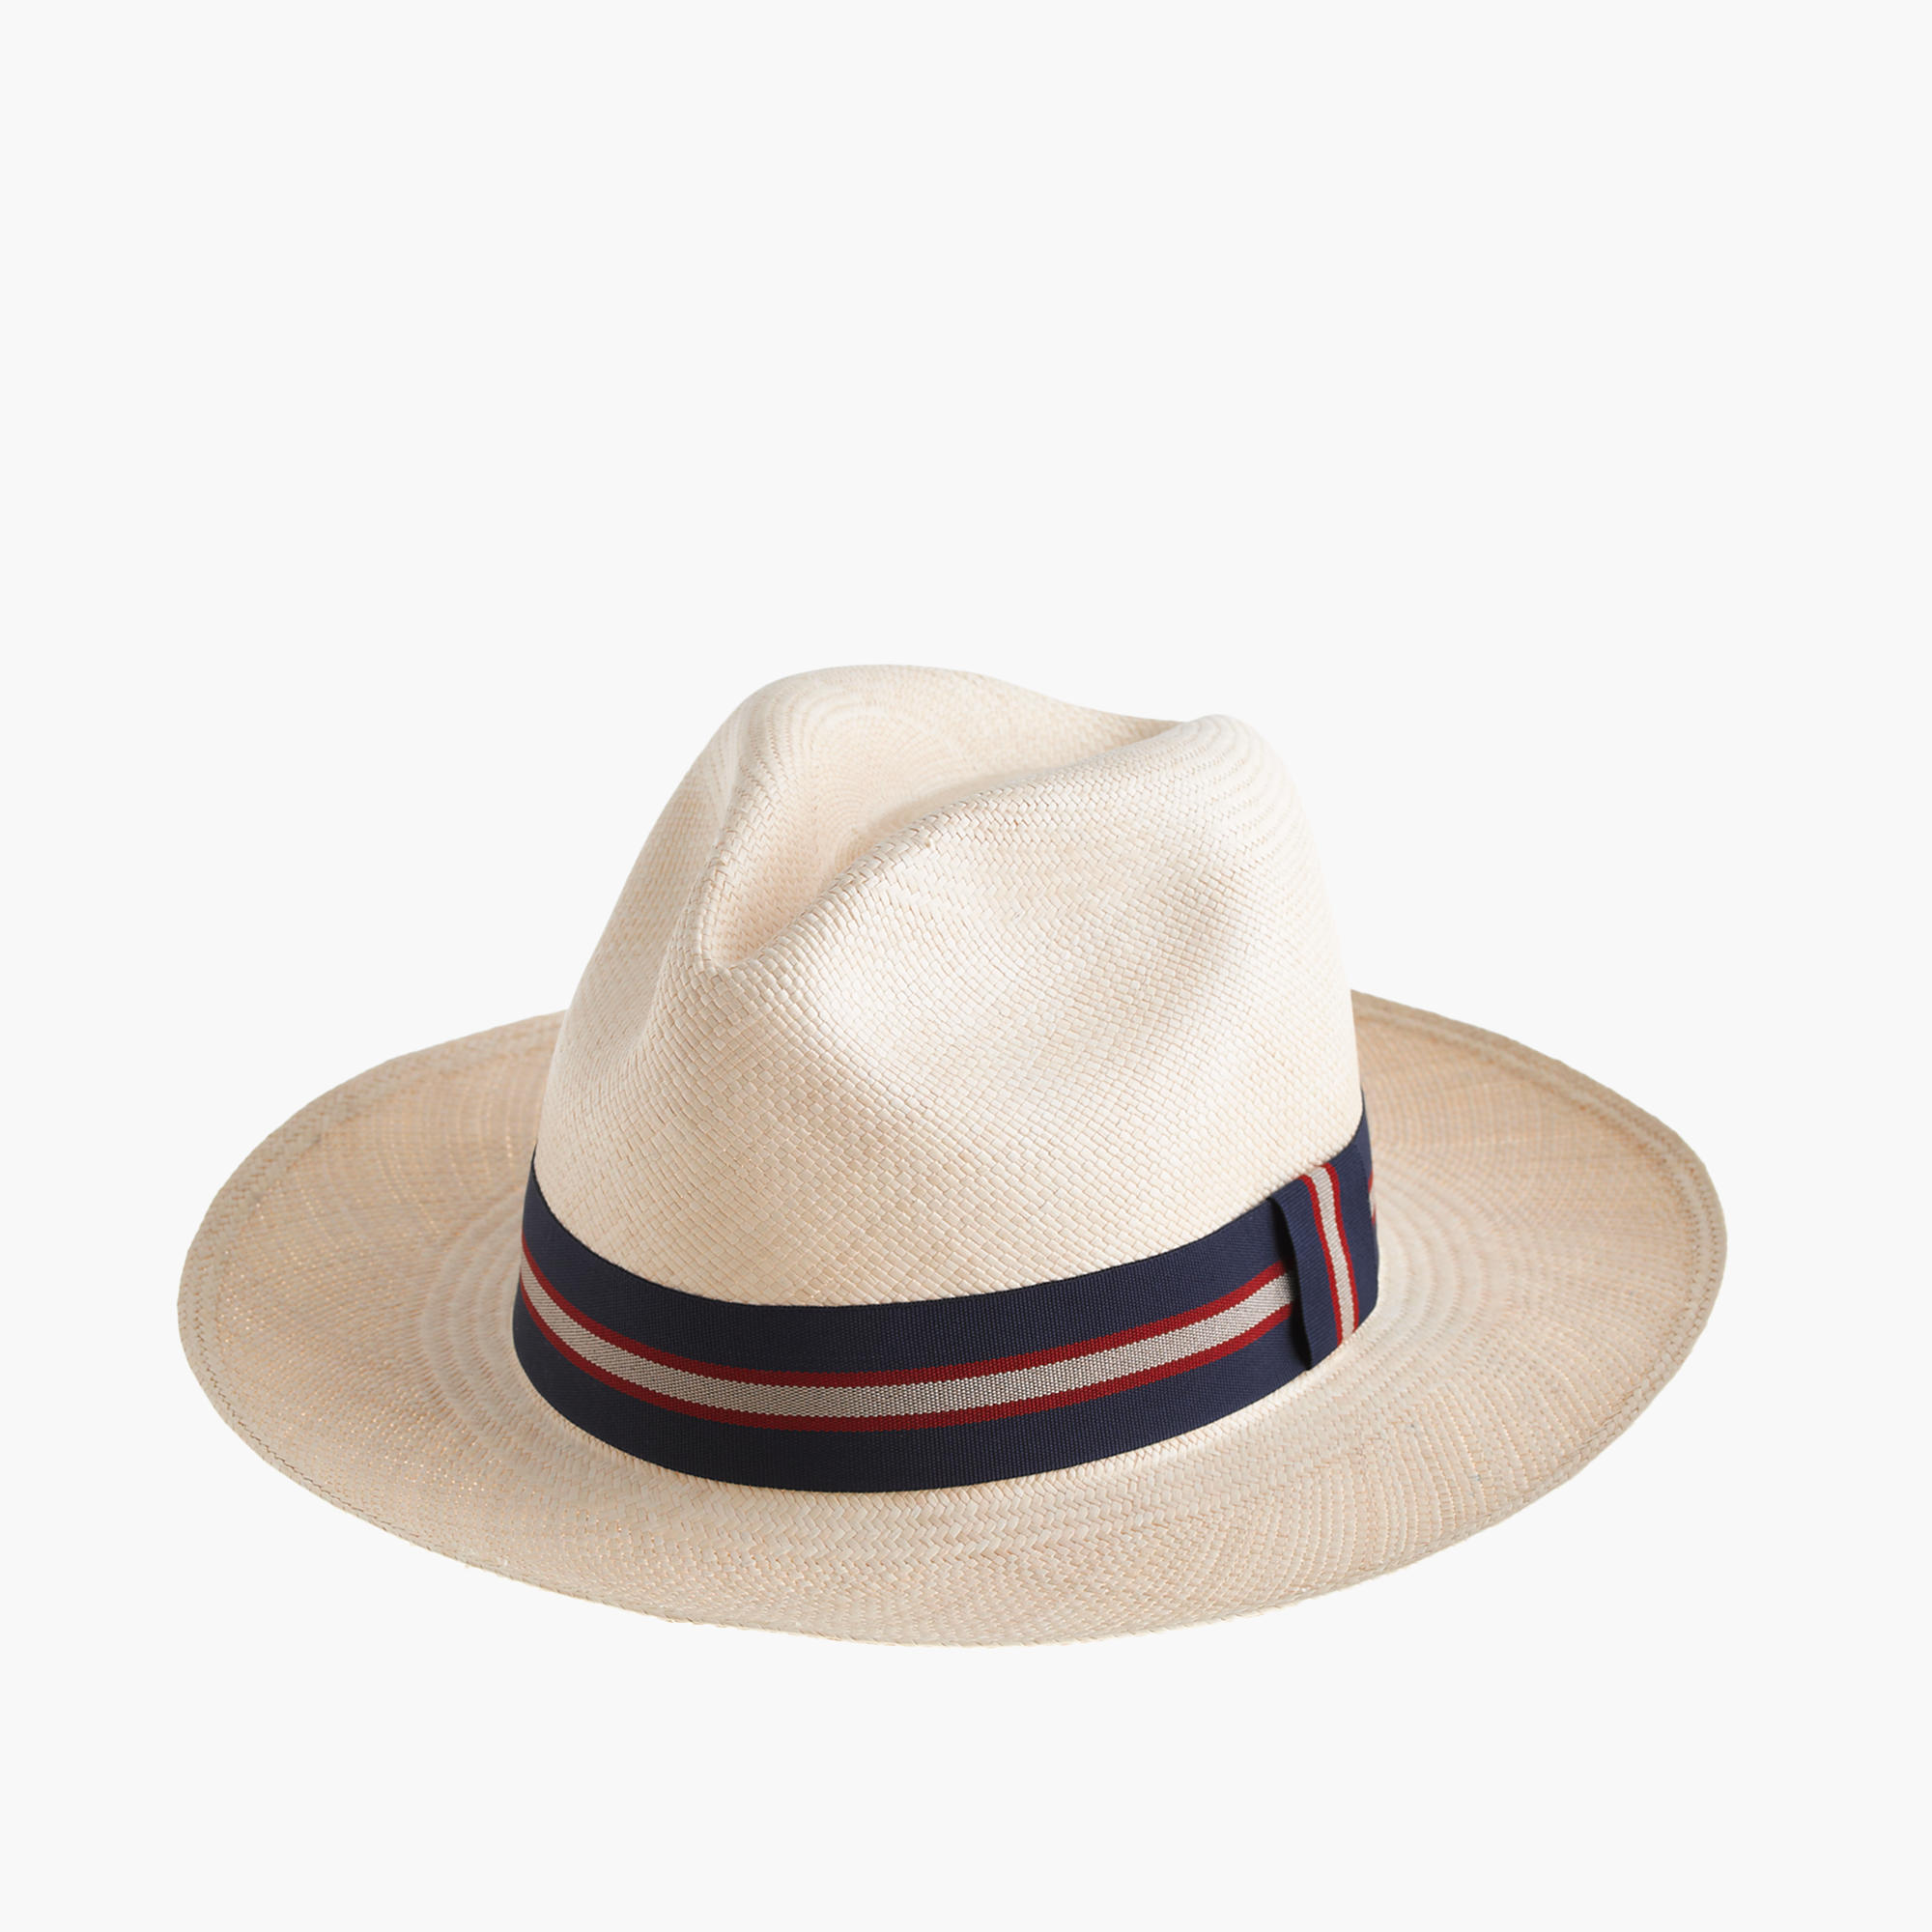 Paulmann Panama Hat With Striped Band : Men's Hats